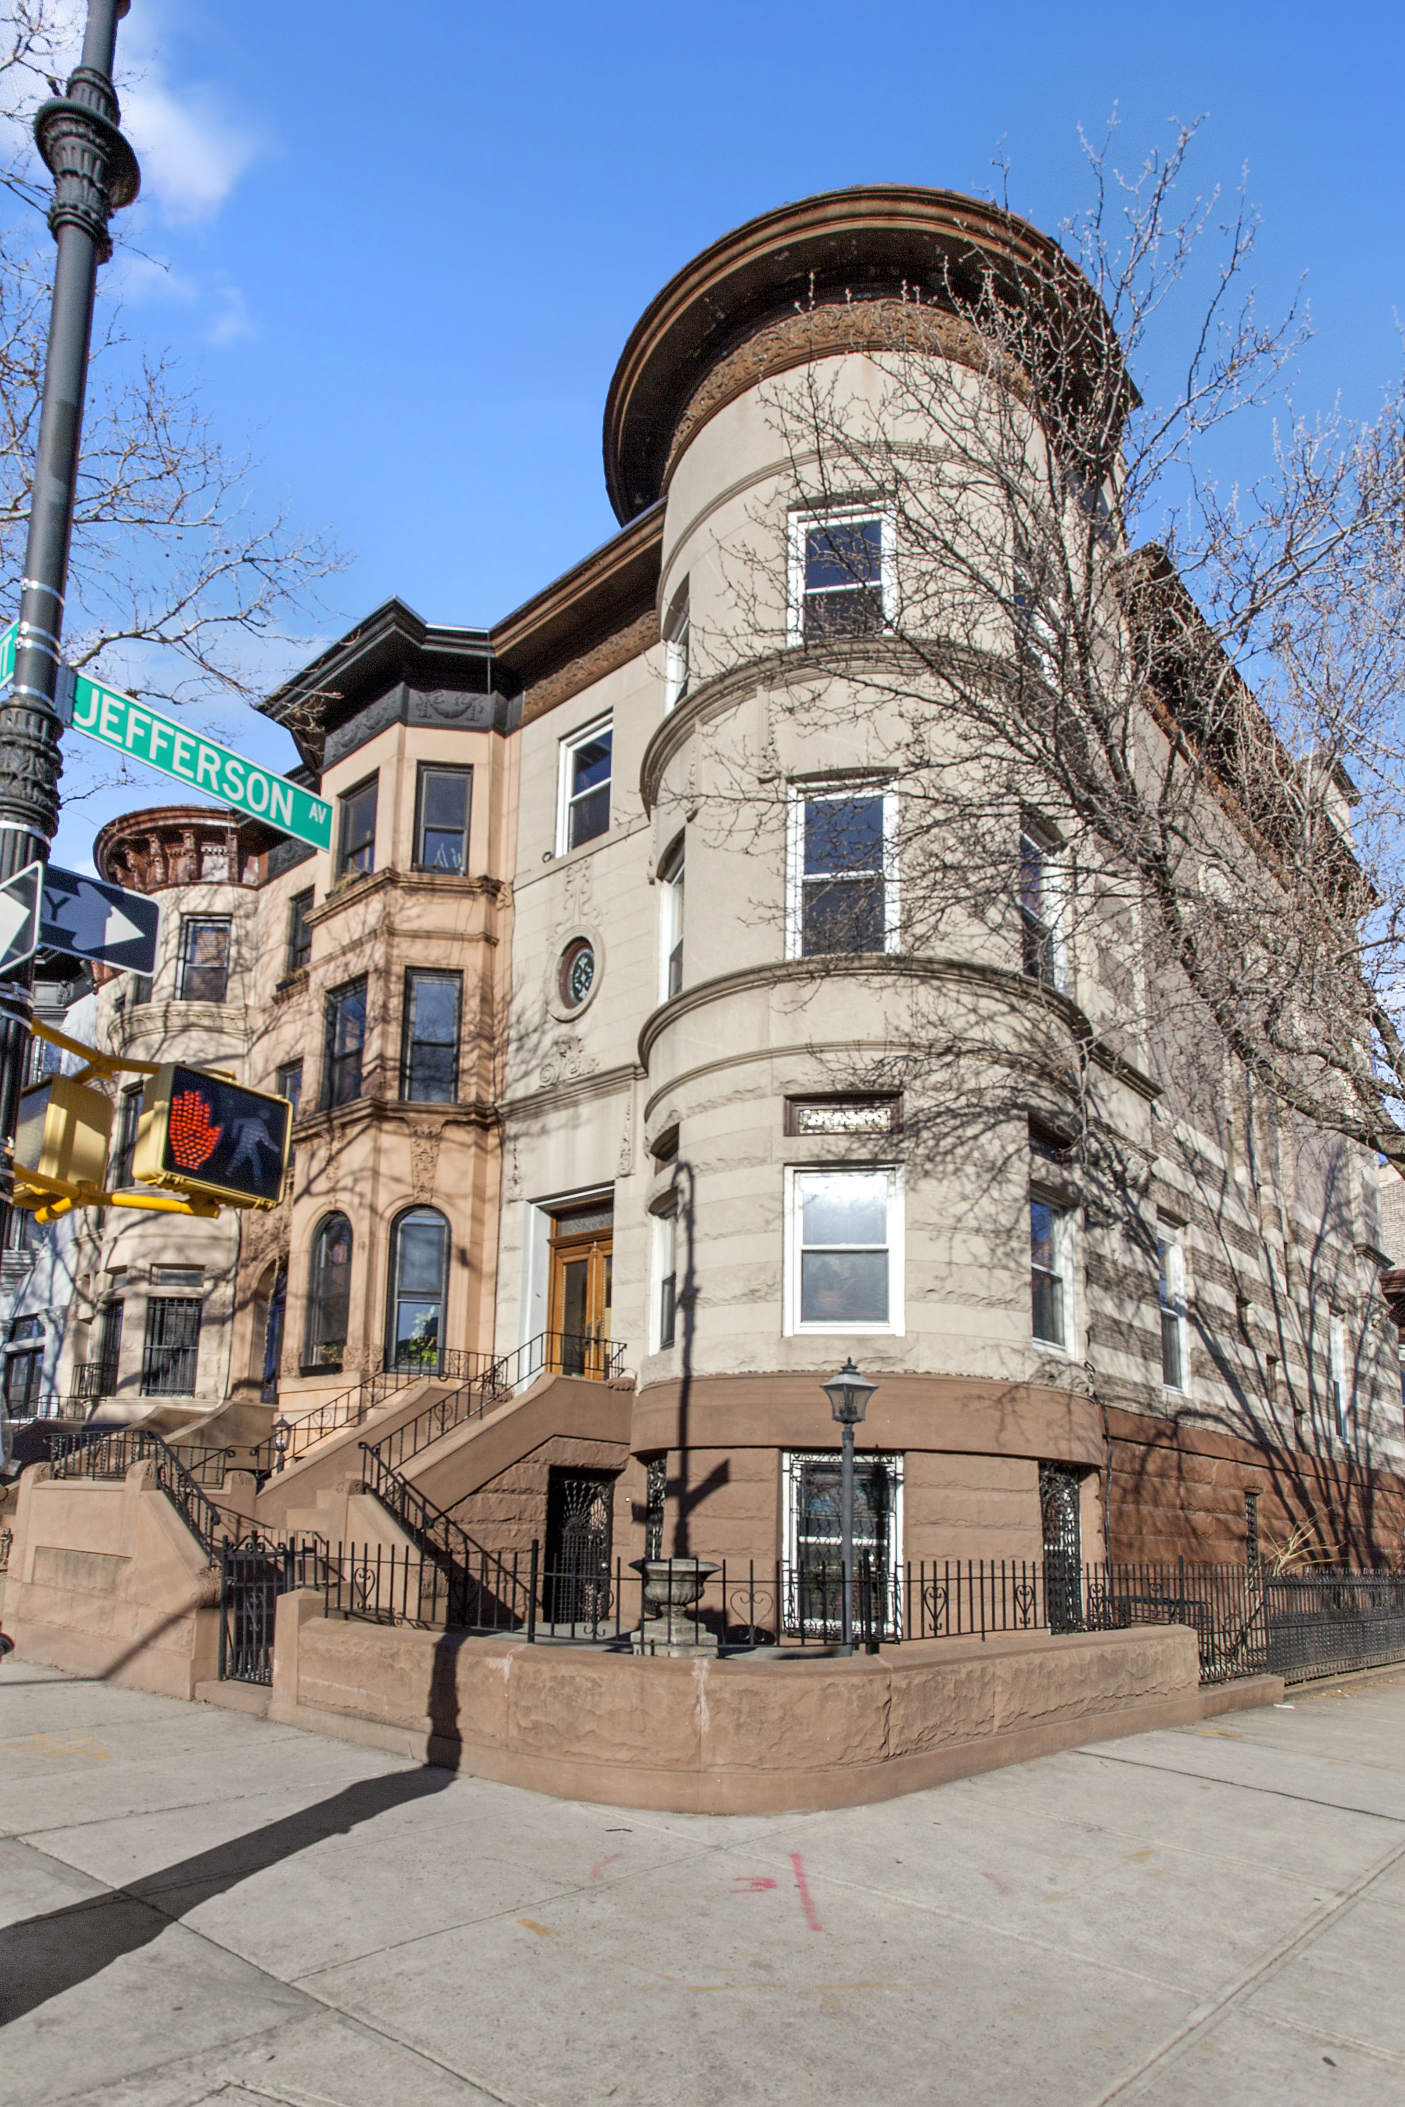 271 Stuyvesant Avenue, Bedford-Stuyvesant, Bed-Stuy, Stuyvesant Heights, Townhouse, Brownstone, Limestone, Historic Homes, Cool Listings, Brooklyn townhouse for sale, Brenda Kenneally